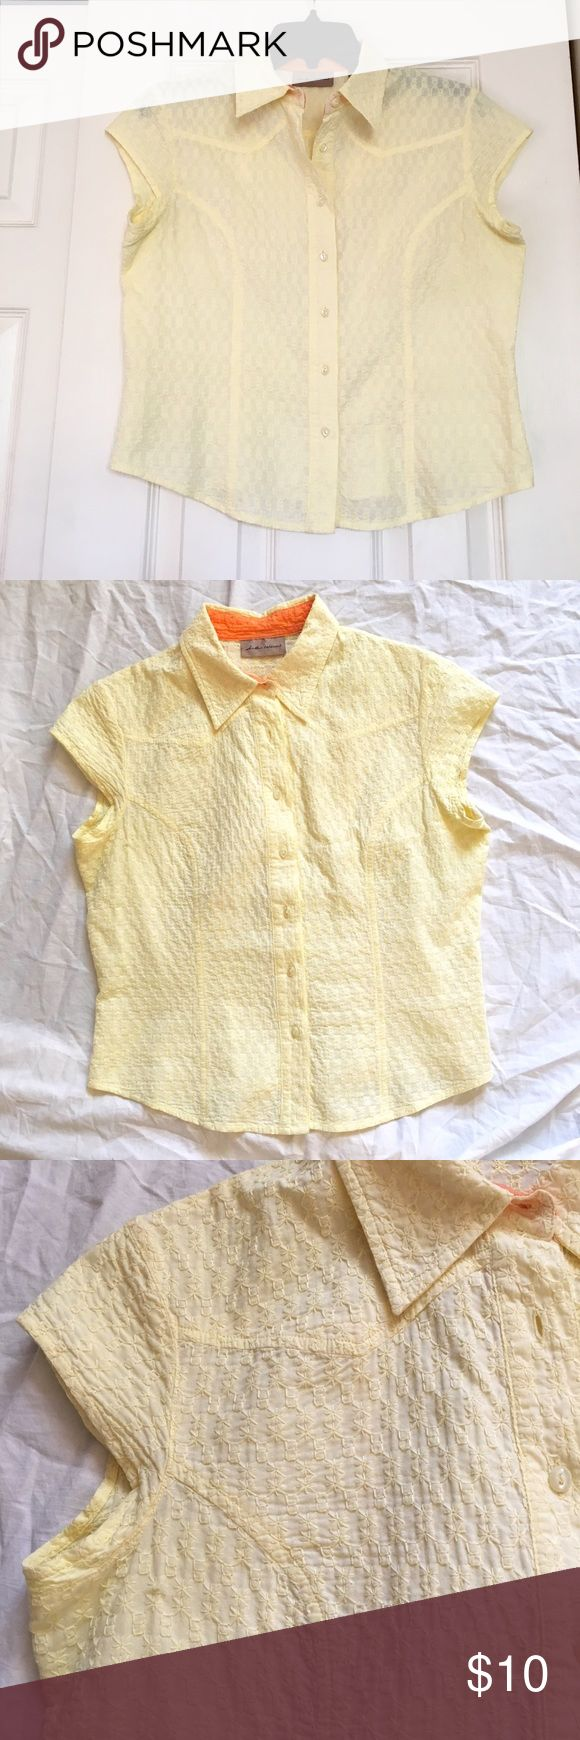 """Yellow Cap Sleeve Eyelet Cotton Blouse Collar I.e. relaxed, Size Medium, Yellow Cap Sleeve Eyelet Cotton Blouse With oxford collar, 7-buttons, shirt tail hem, princess seaming for fit, Western style pointed yoke front and back. Great with cutoffs, Jeans And skirts! Measures 16"""" across shoulders, 19"""" armpit to armpit, 22"""" long from shoulders, 19"""" side to side at hem. BUNDLE and SAVE i.e. relaxed Tops Button Down Shirts"""